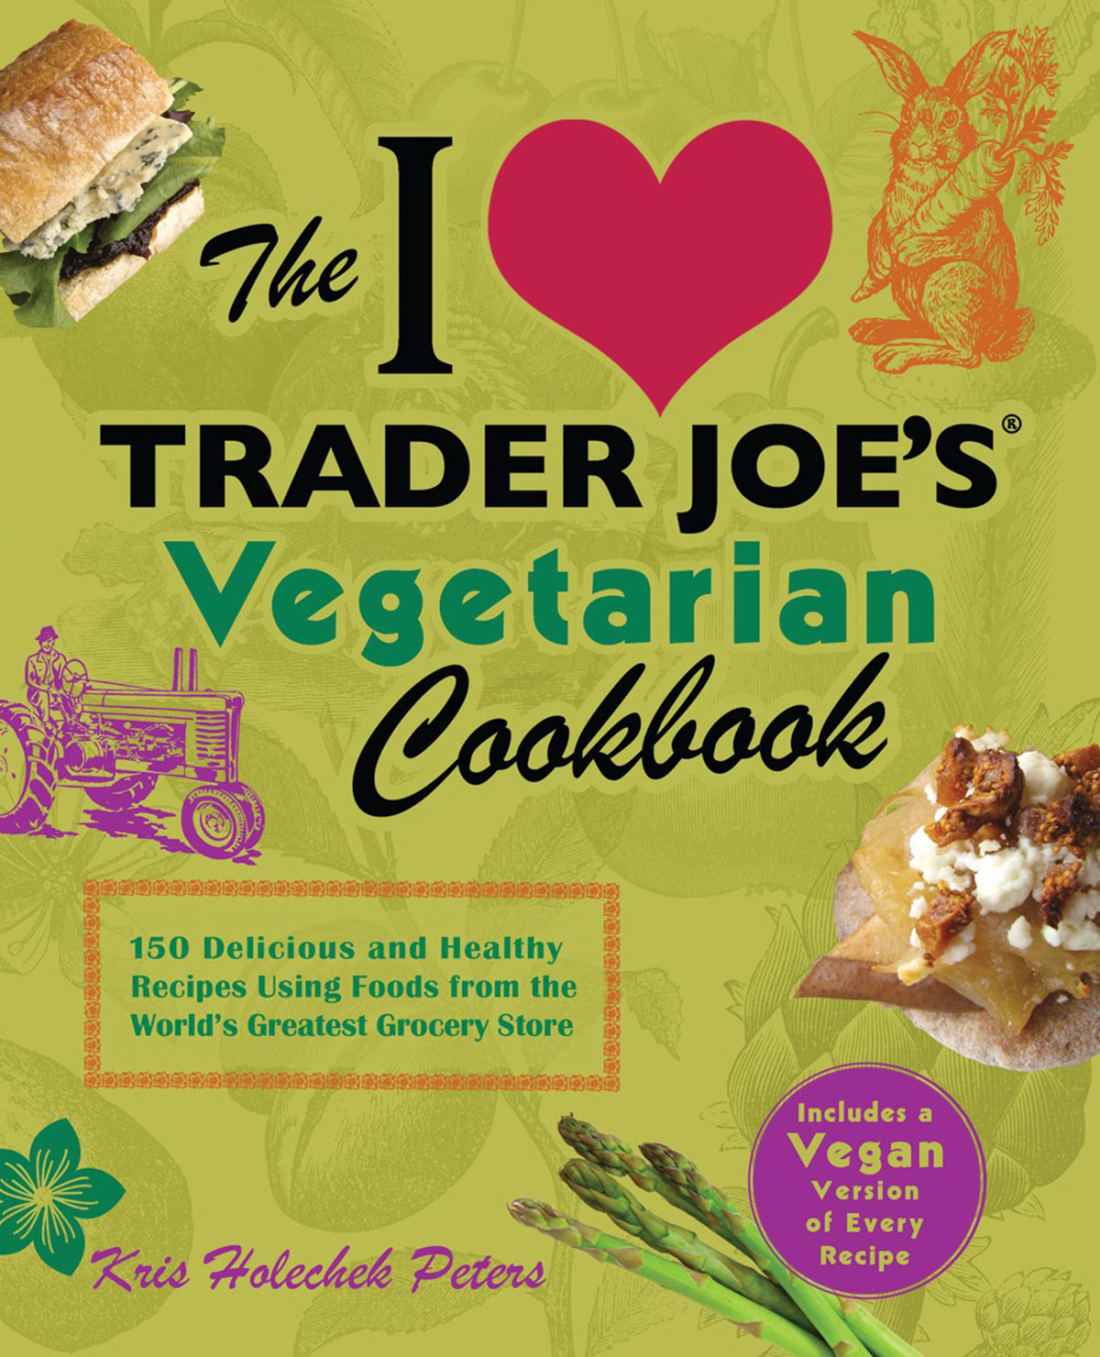 The I Love Trader Joe's Vegetarian Cookbook by Kris Holechek Peters